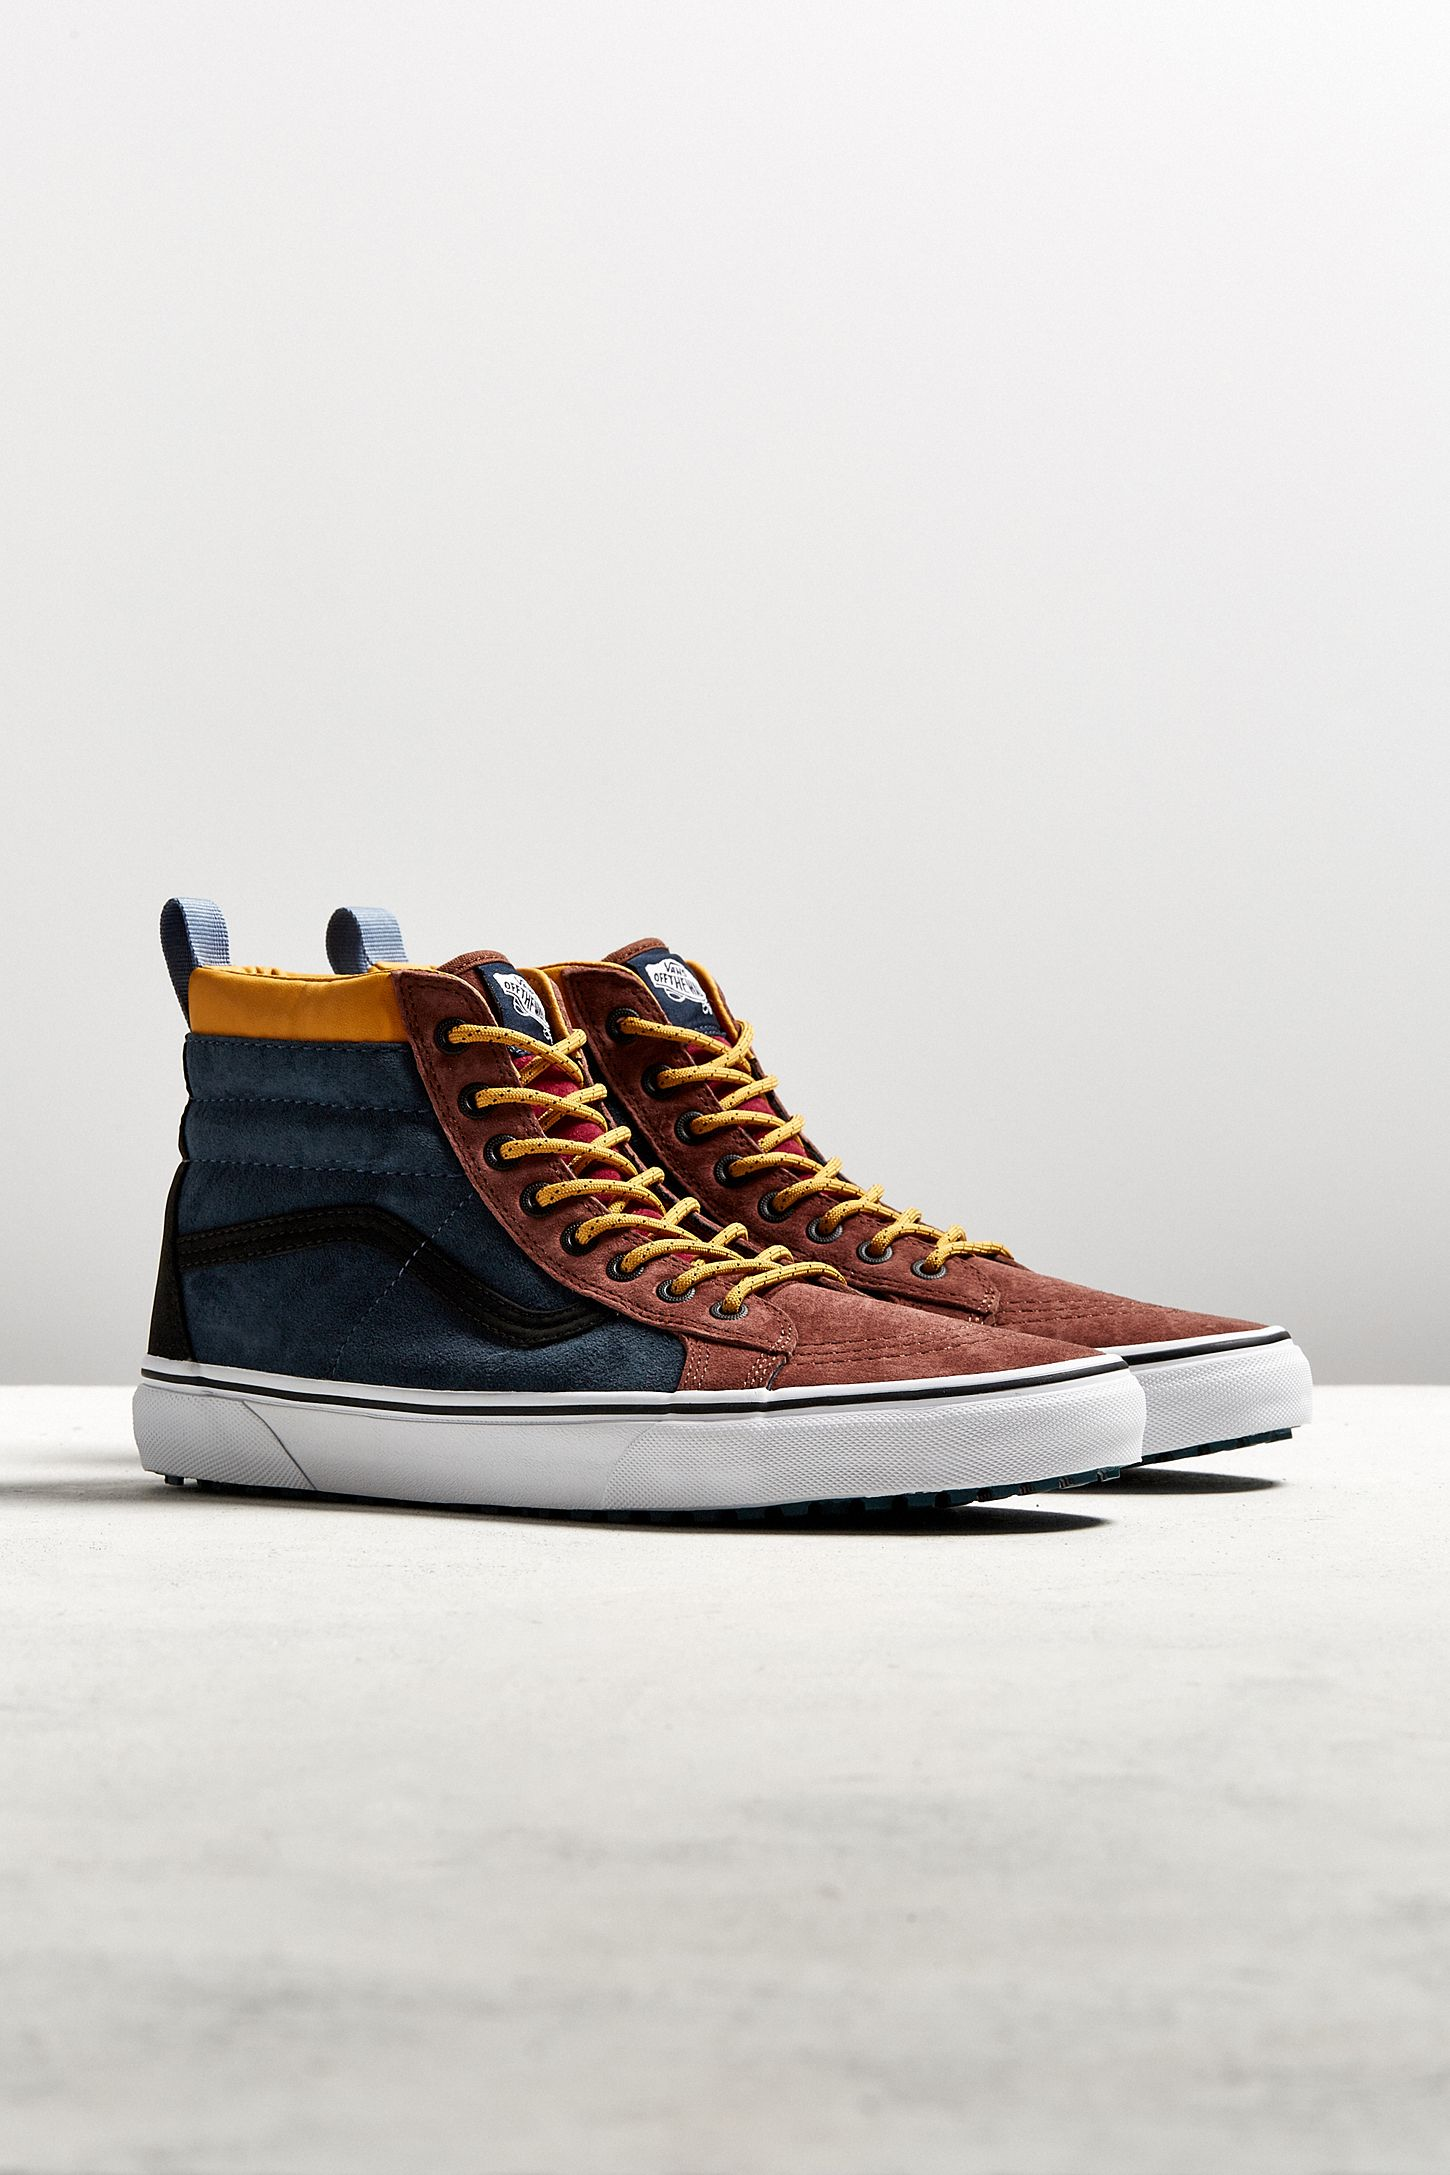 bada6f404a Vans Sk8-Hi MTE Colorblocked Sneakerboot